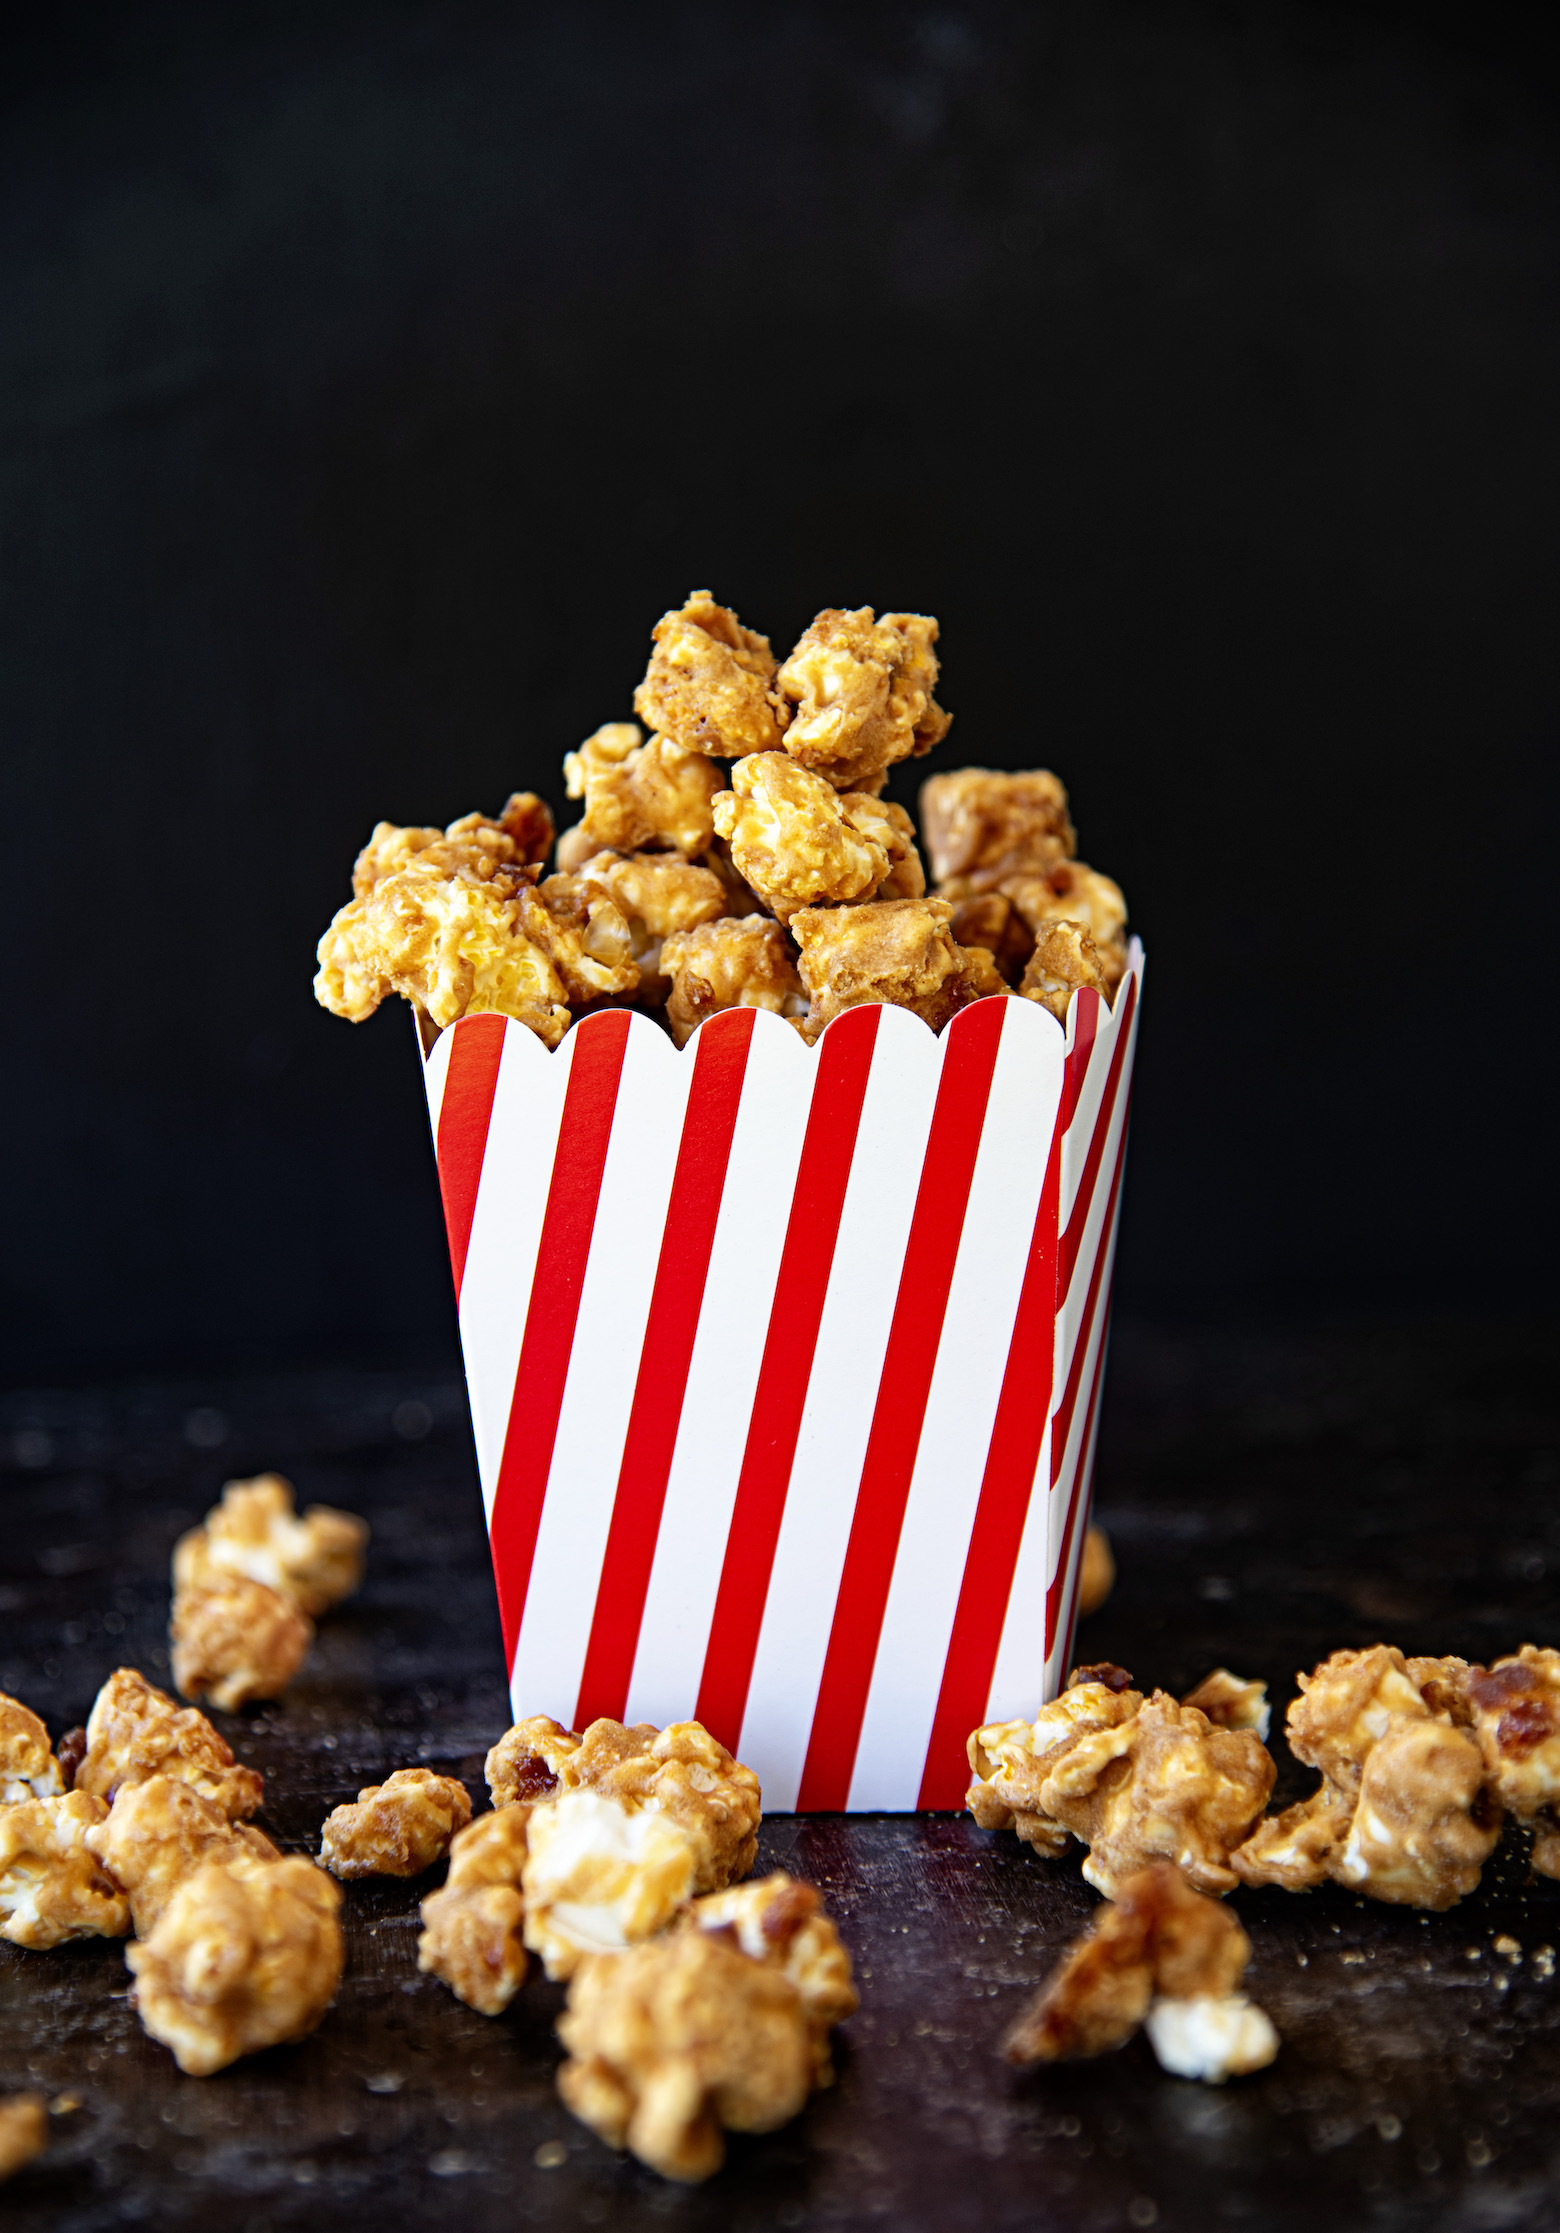 Peanut Butter Jelly Caramel Corn